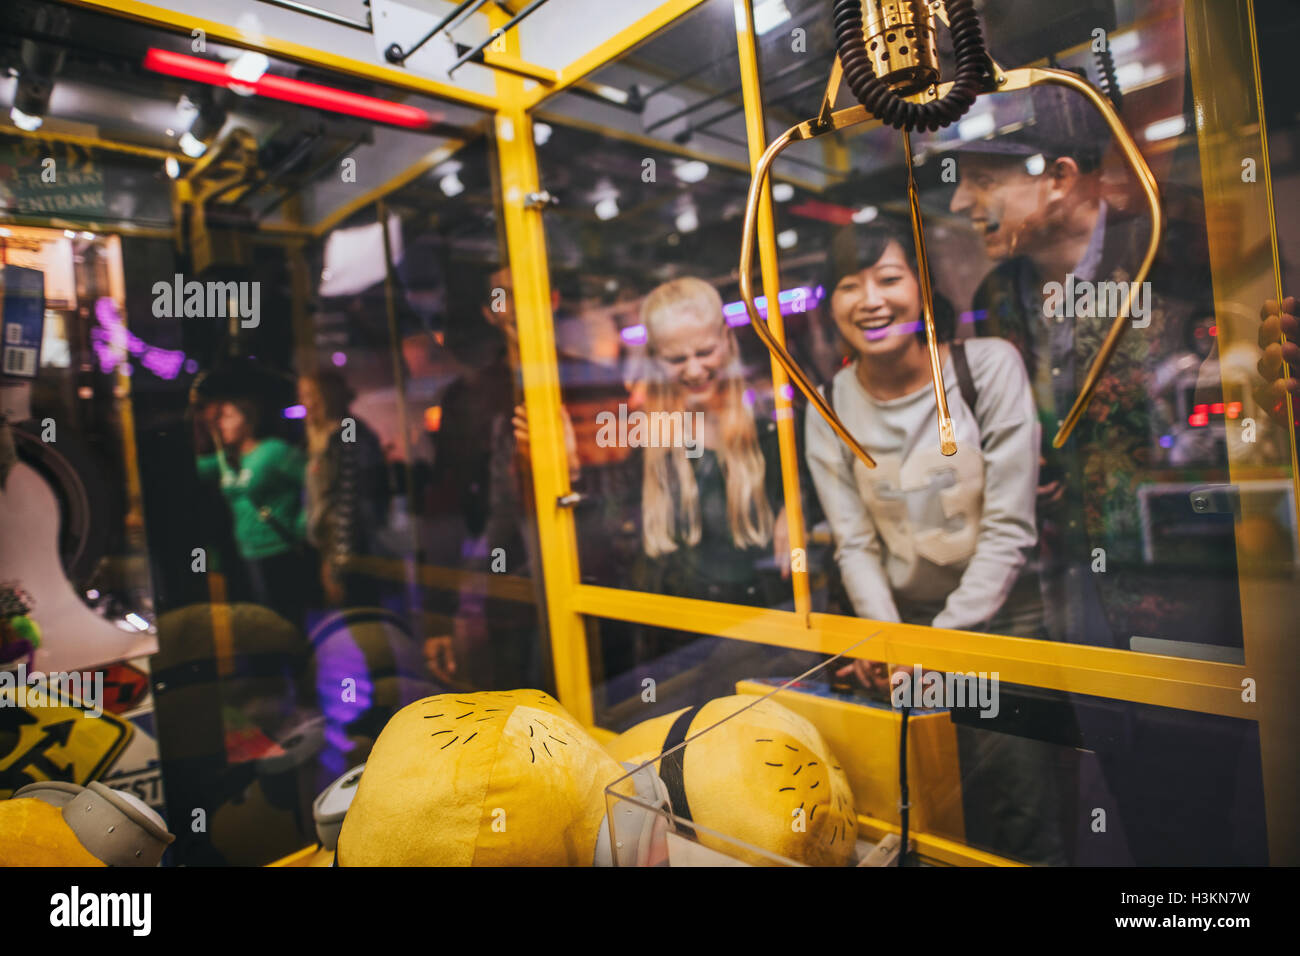 Happy young woman playing toy grabbing game with friends at amusement park. - Stock Image